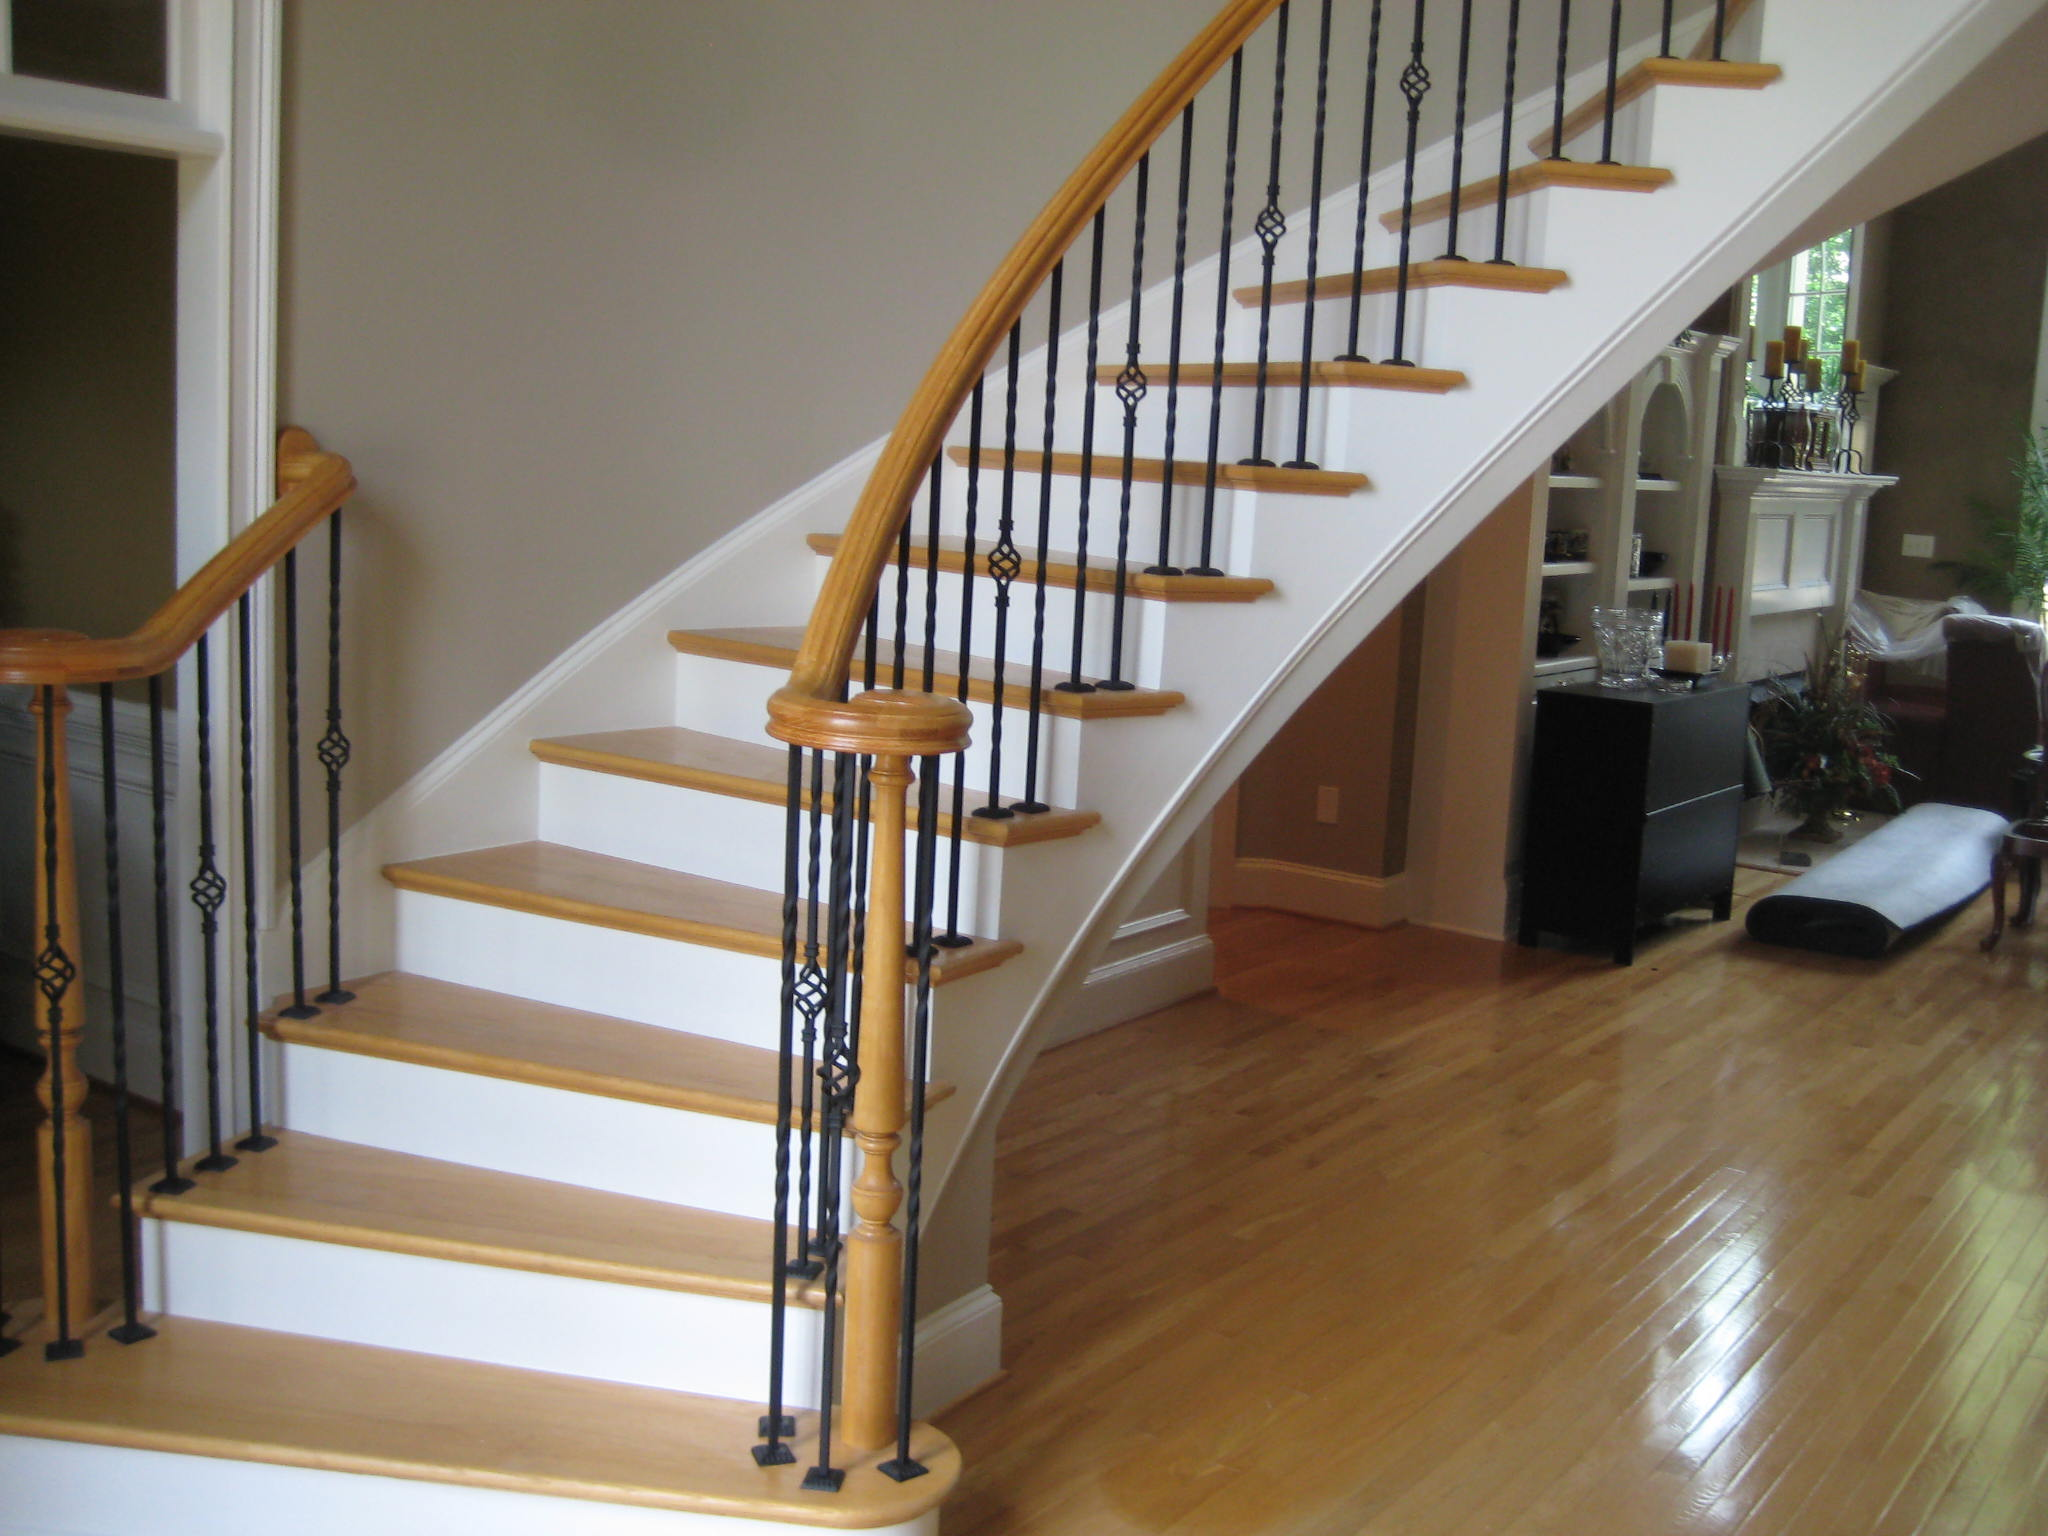 Iron Balusters enhances elegant staircase.